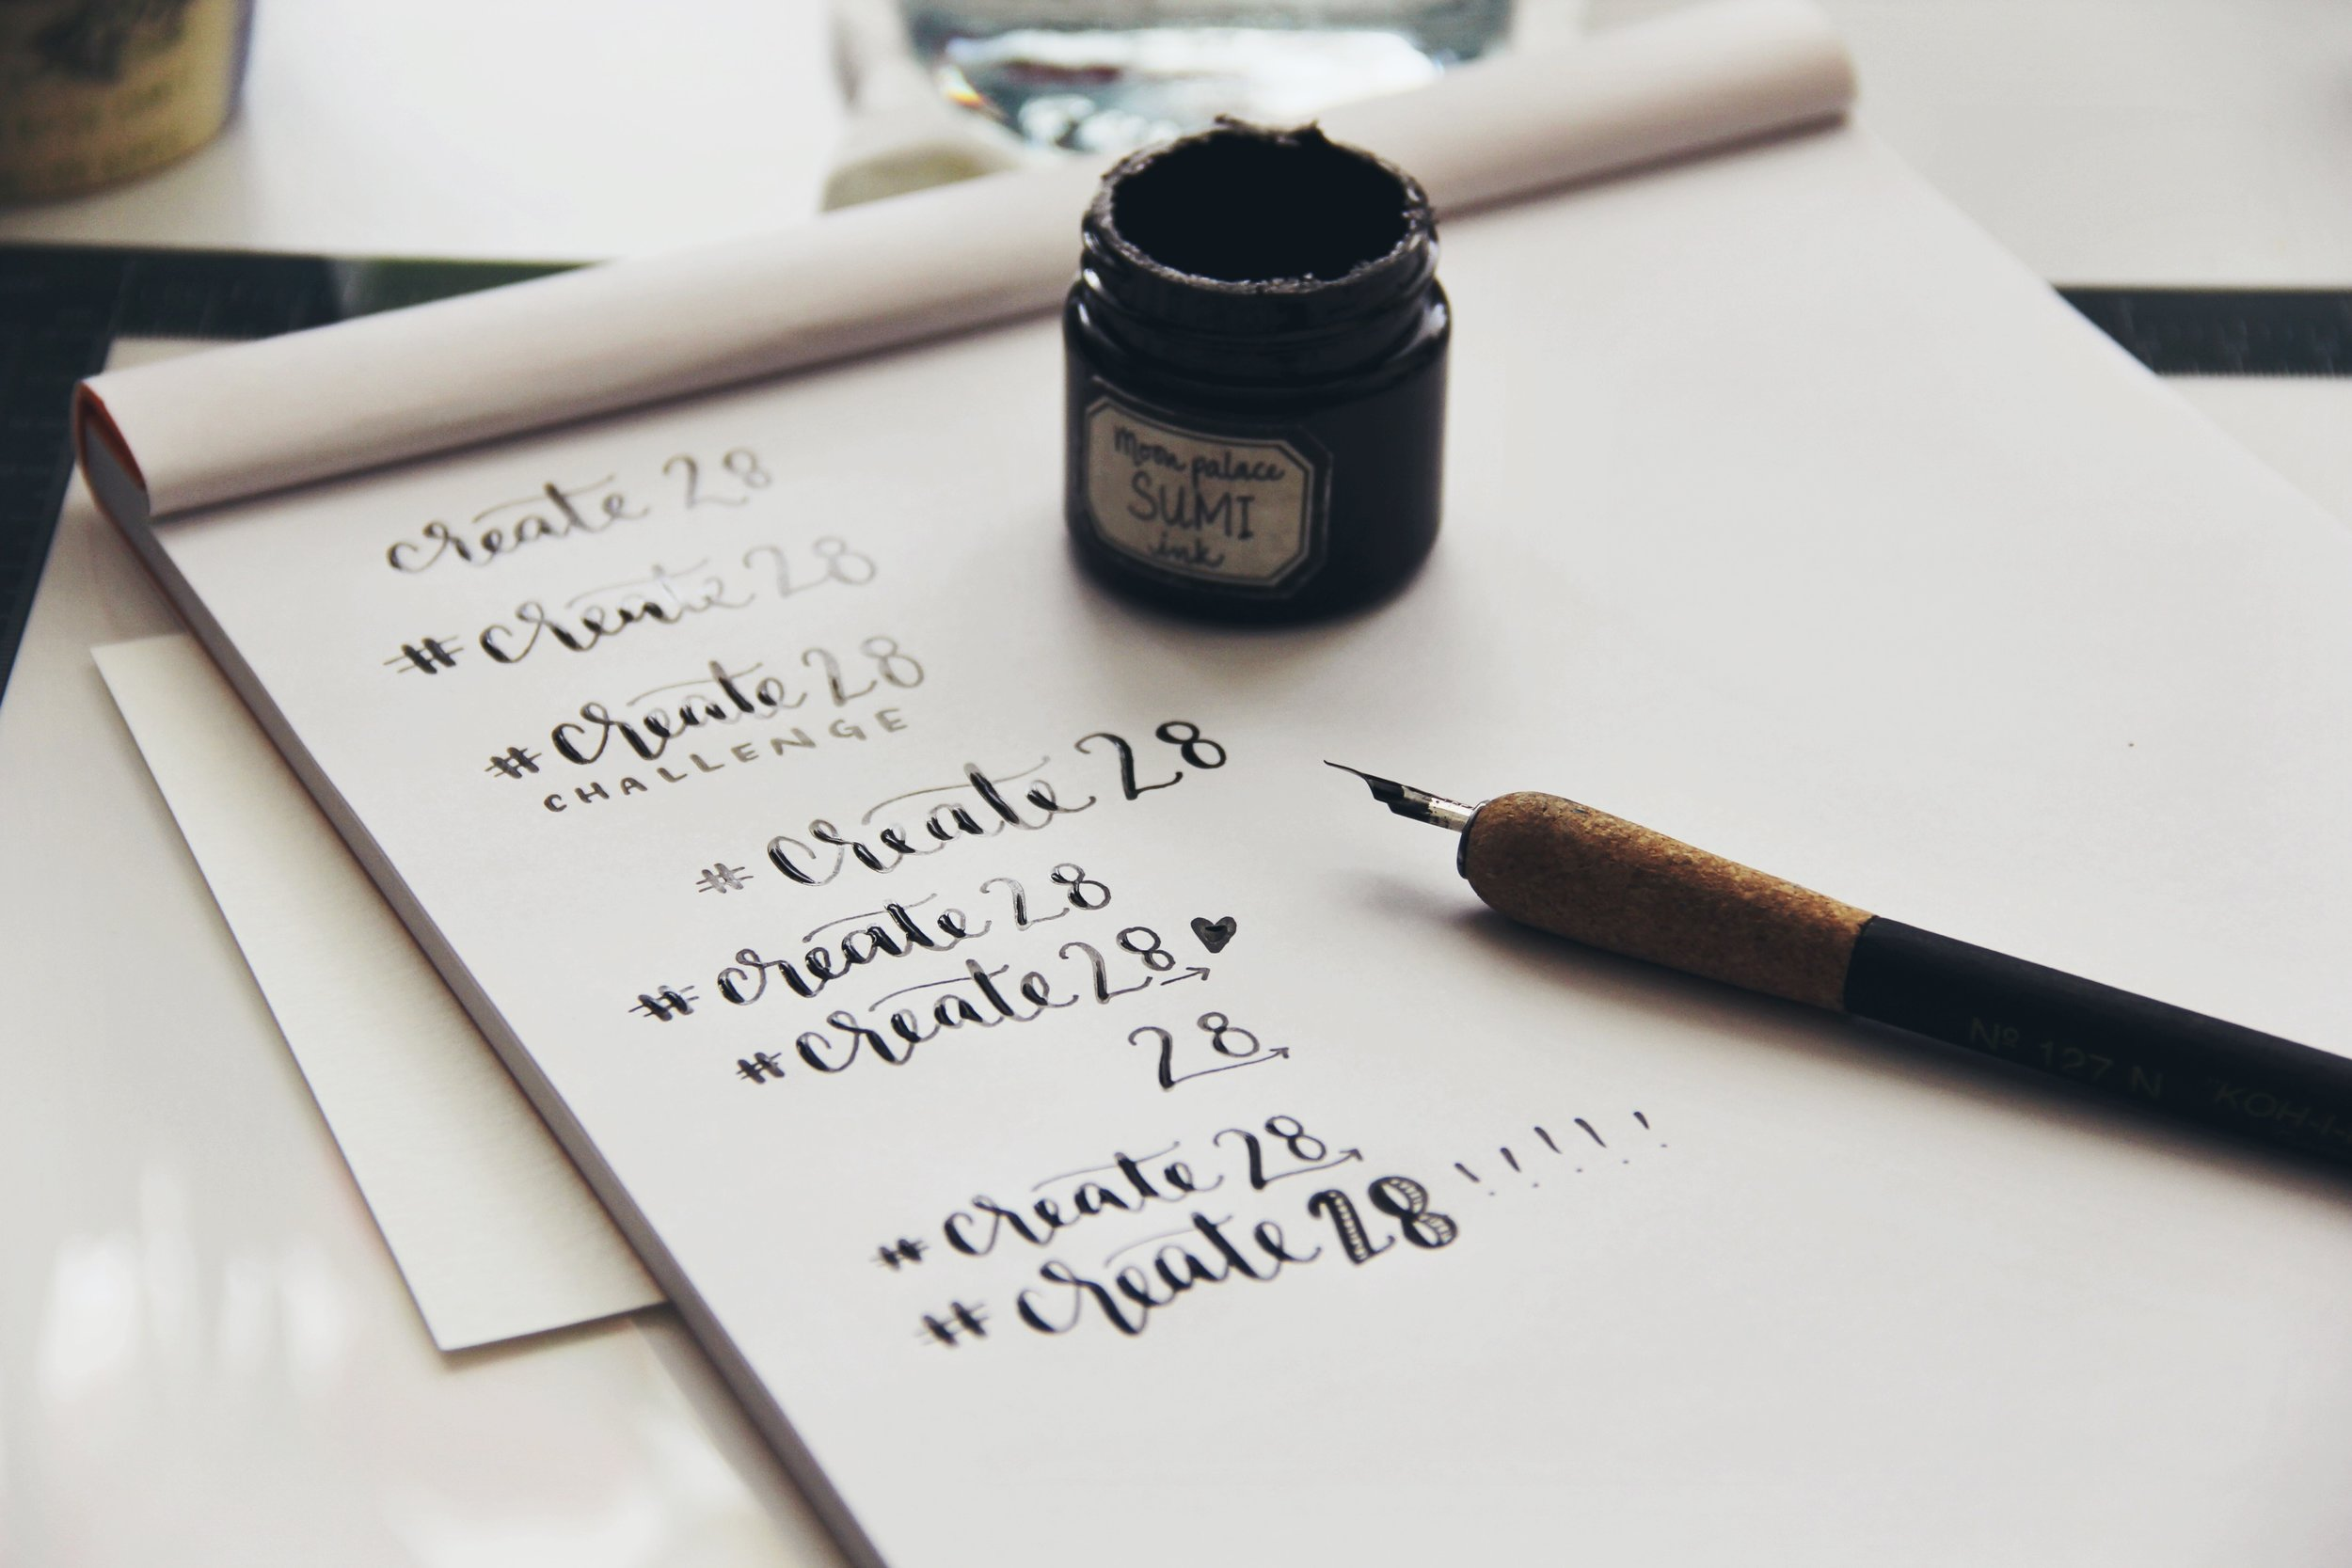 """I calligraphed a zillion """"#Create28"""" samples, with the plan to digitize one for the announcement post of this project today.Yes, I ended up tossing out all of these ideas. Not without first realizing the insane irony in ALL of this."""